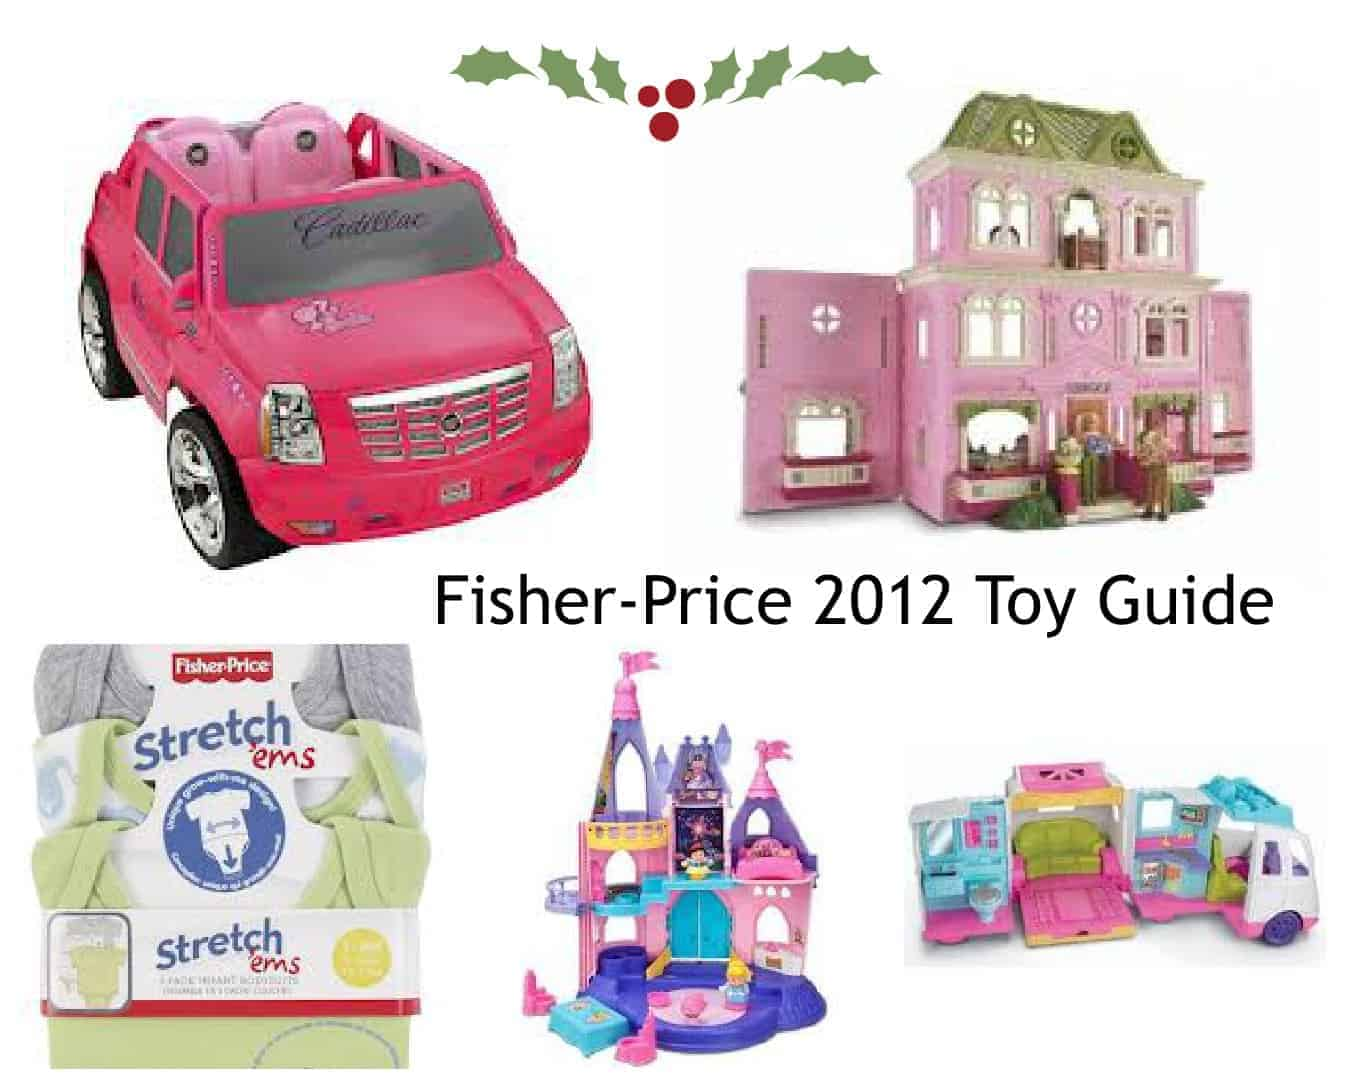 Fisher-Price 2012 Holiday Toy Guide